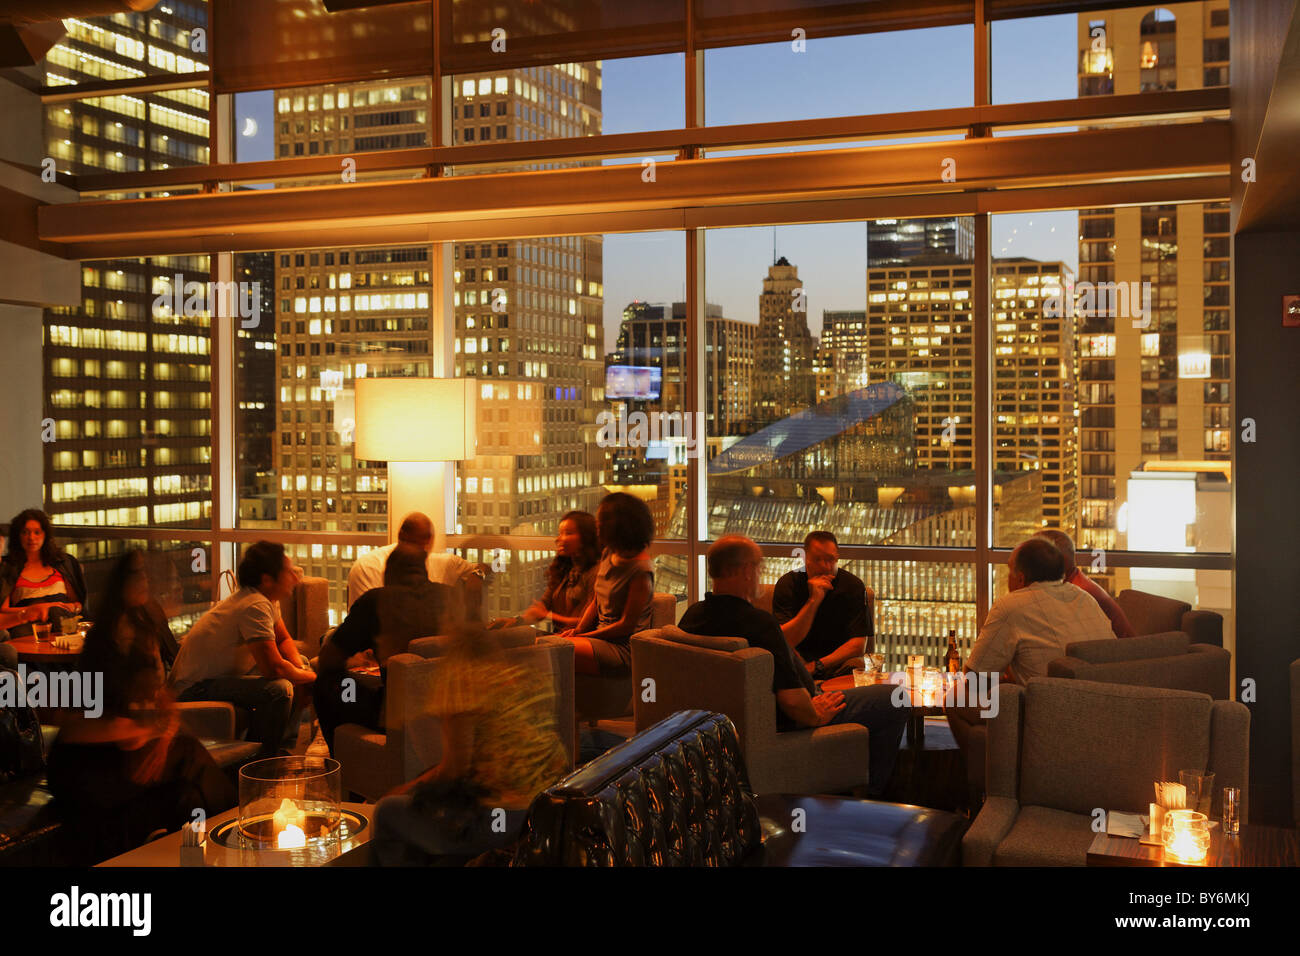 Lovely ROOF, Rooftop Bar And Grill, The Wit Hotel, Chicago, Illinois, USA